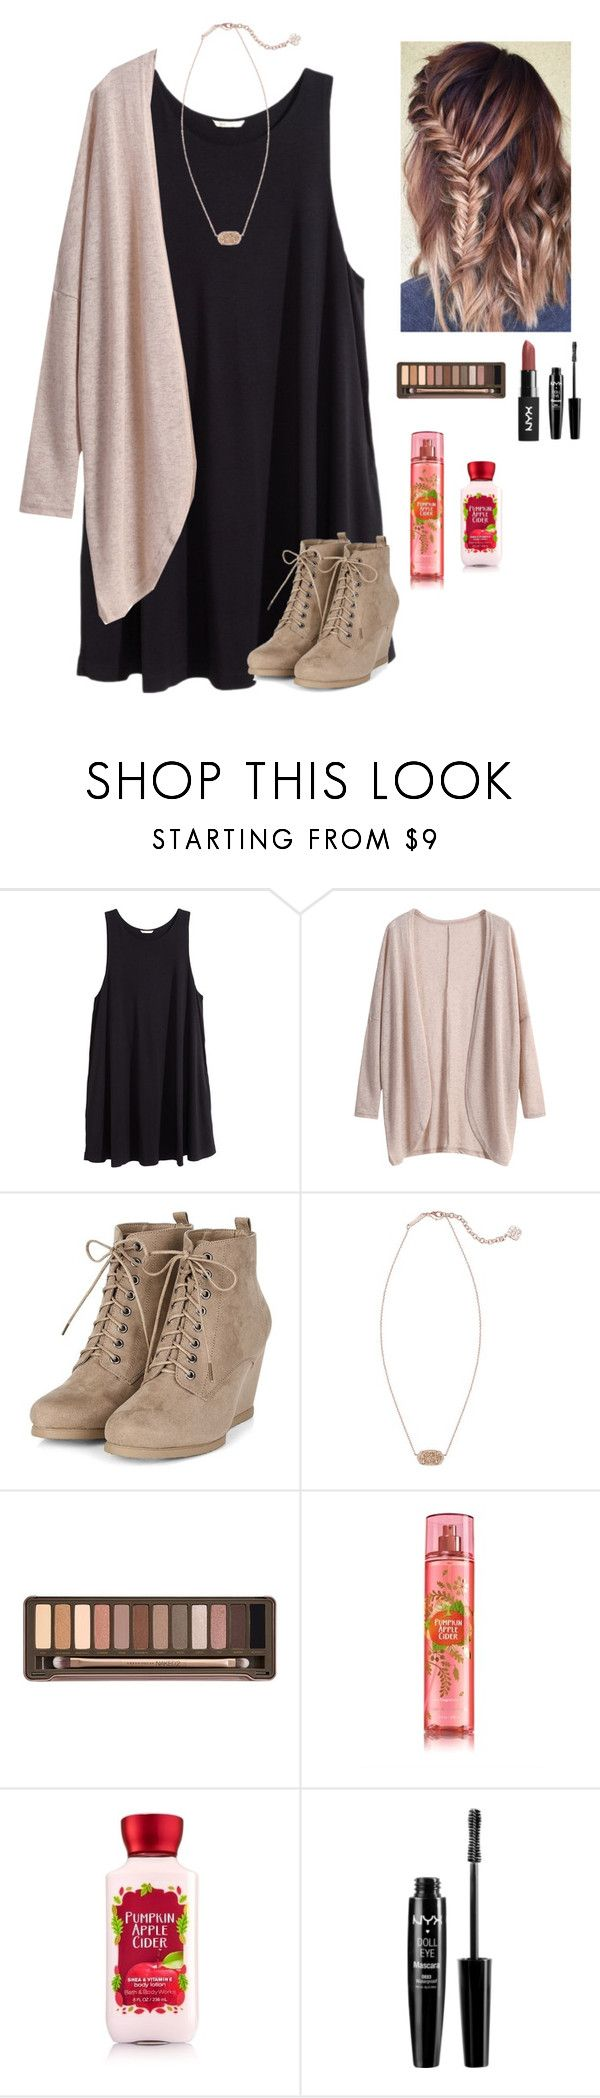 Quot Heading To A Saturday Mass Quot By A Devo Liked On Polyvore